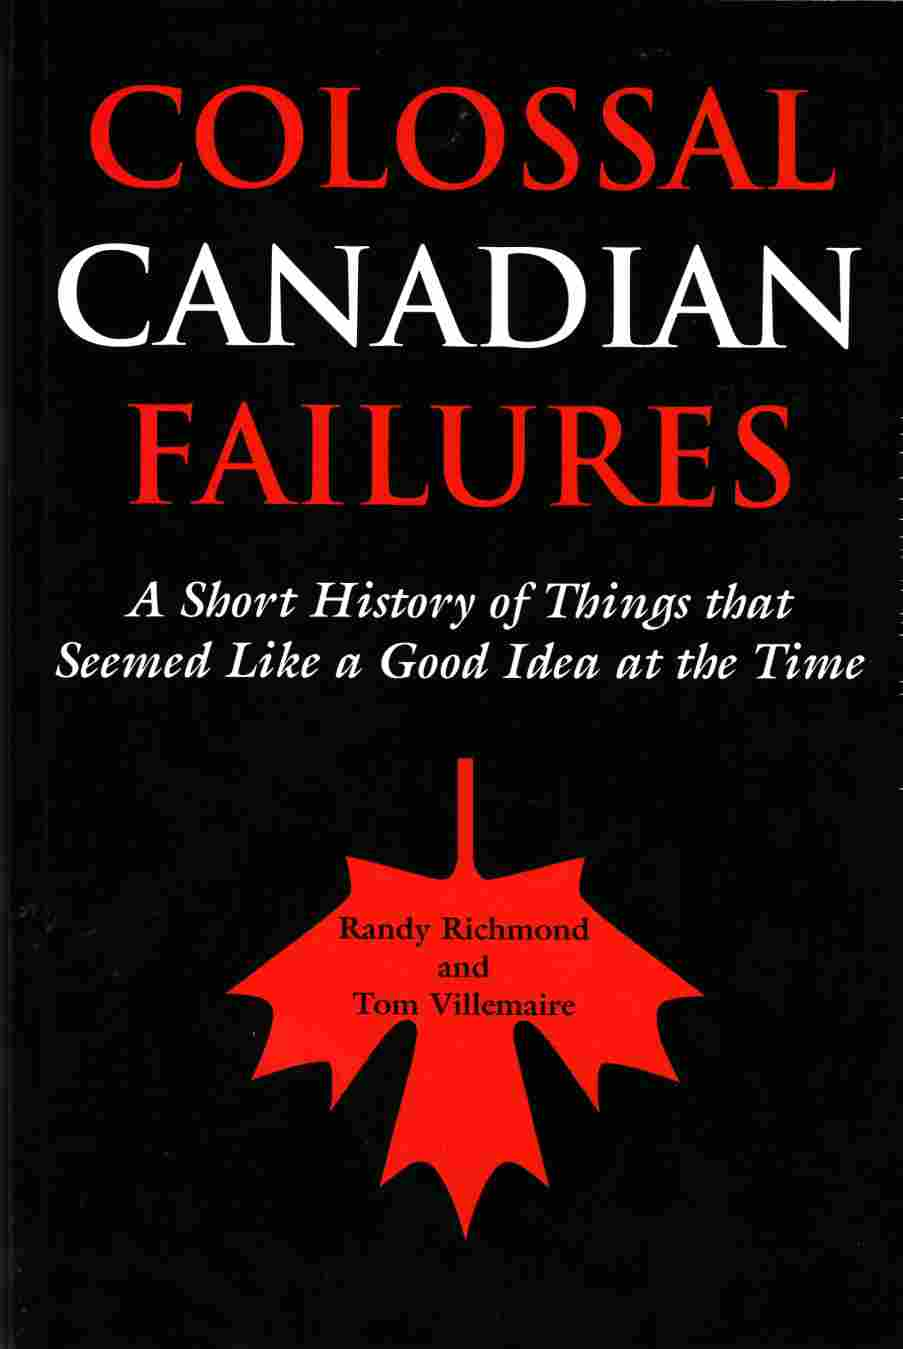 Image for Colossal Canadian Failures A Short History of Things That Seemed like a Good Idea At the Time